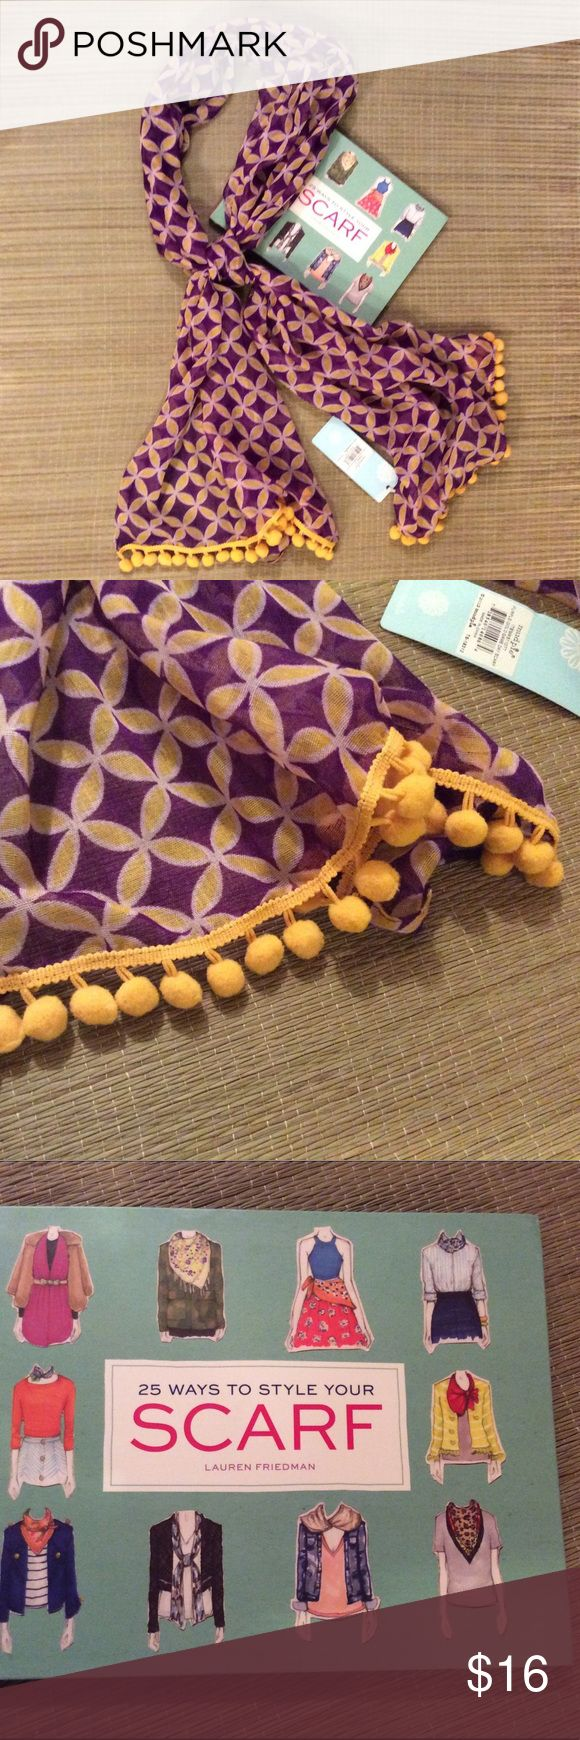 """Mud Pie Pom Pom scarf w/free book. Purple and gold scarf with Pom Pom trim.  Measures 66"""" X 20"""".  Book includes illustrated instructions for each style.  Scarf and book are both new.  Great scarf for LSU game day!😊 Mud Pie Accessories Scarves & Wraps"""